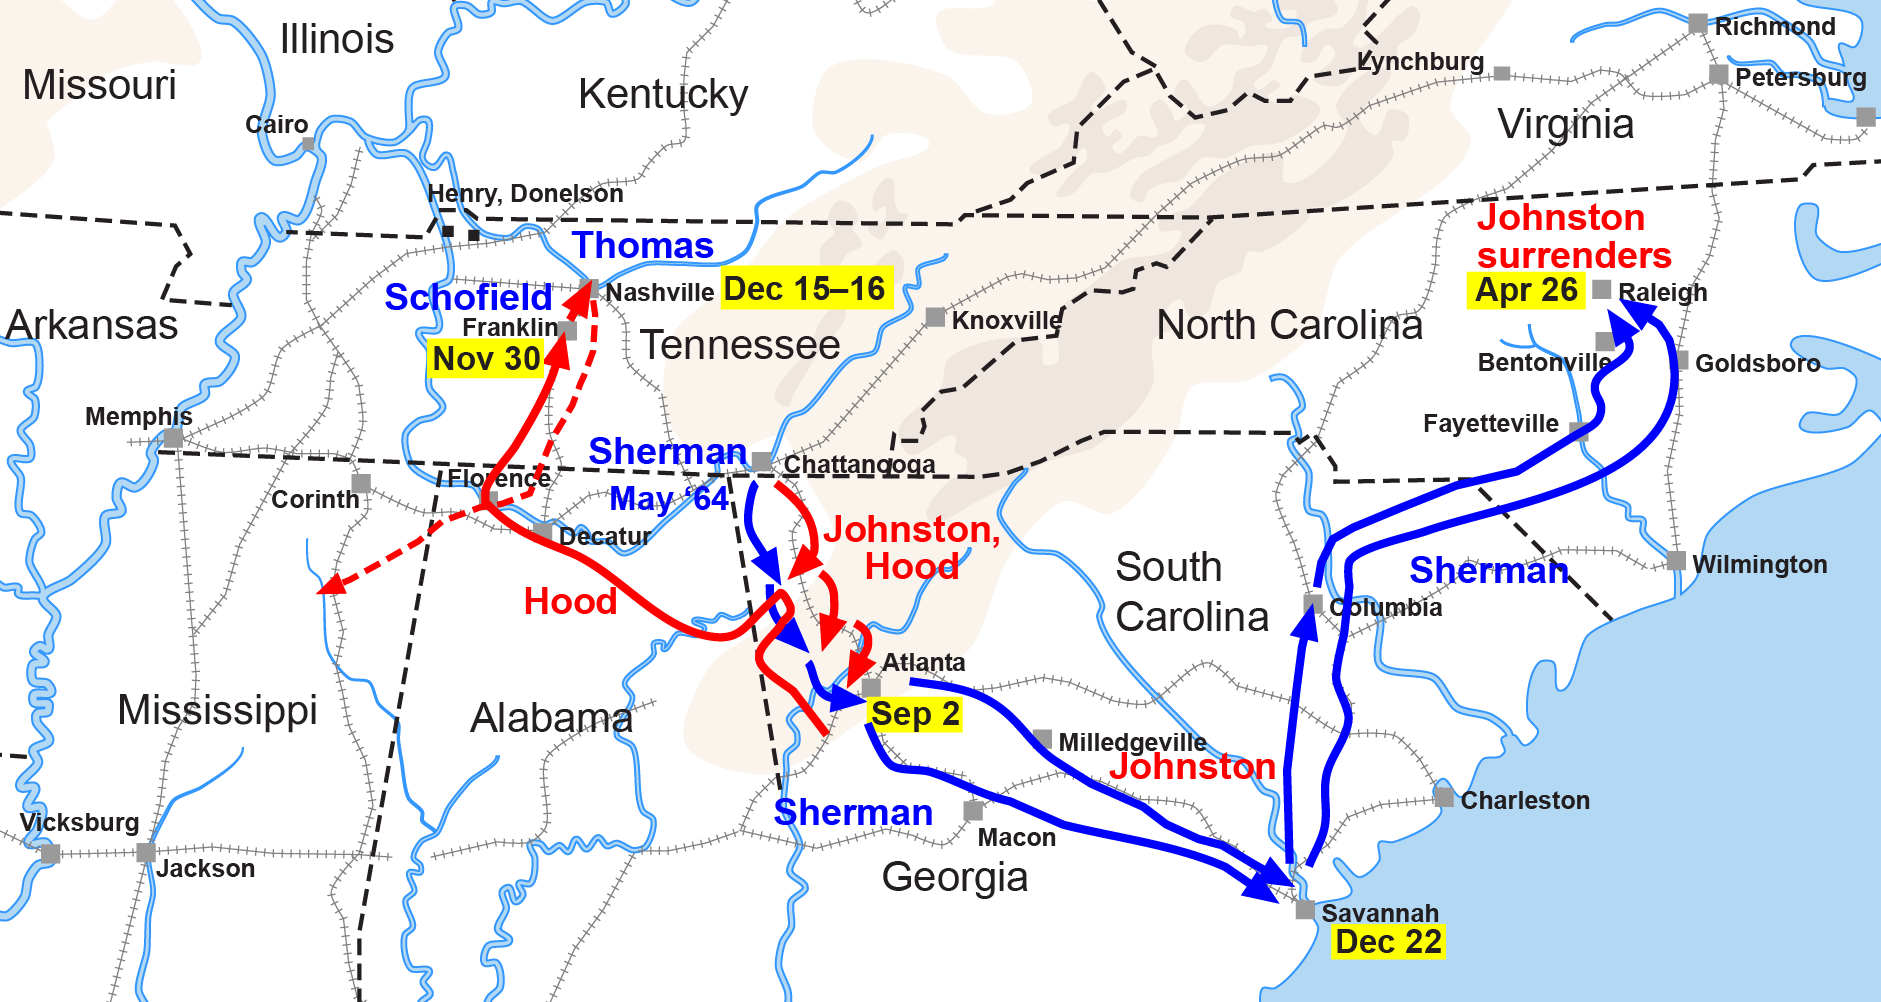 ACW ChattanoogaCarolinas William Tecumseh Sherman Wikipedia - Map of atlanta civil war